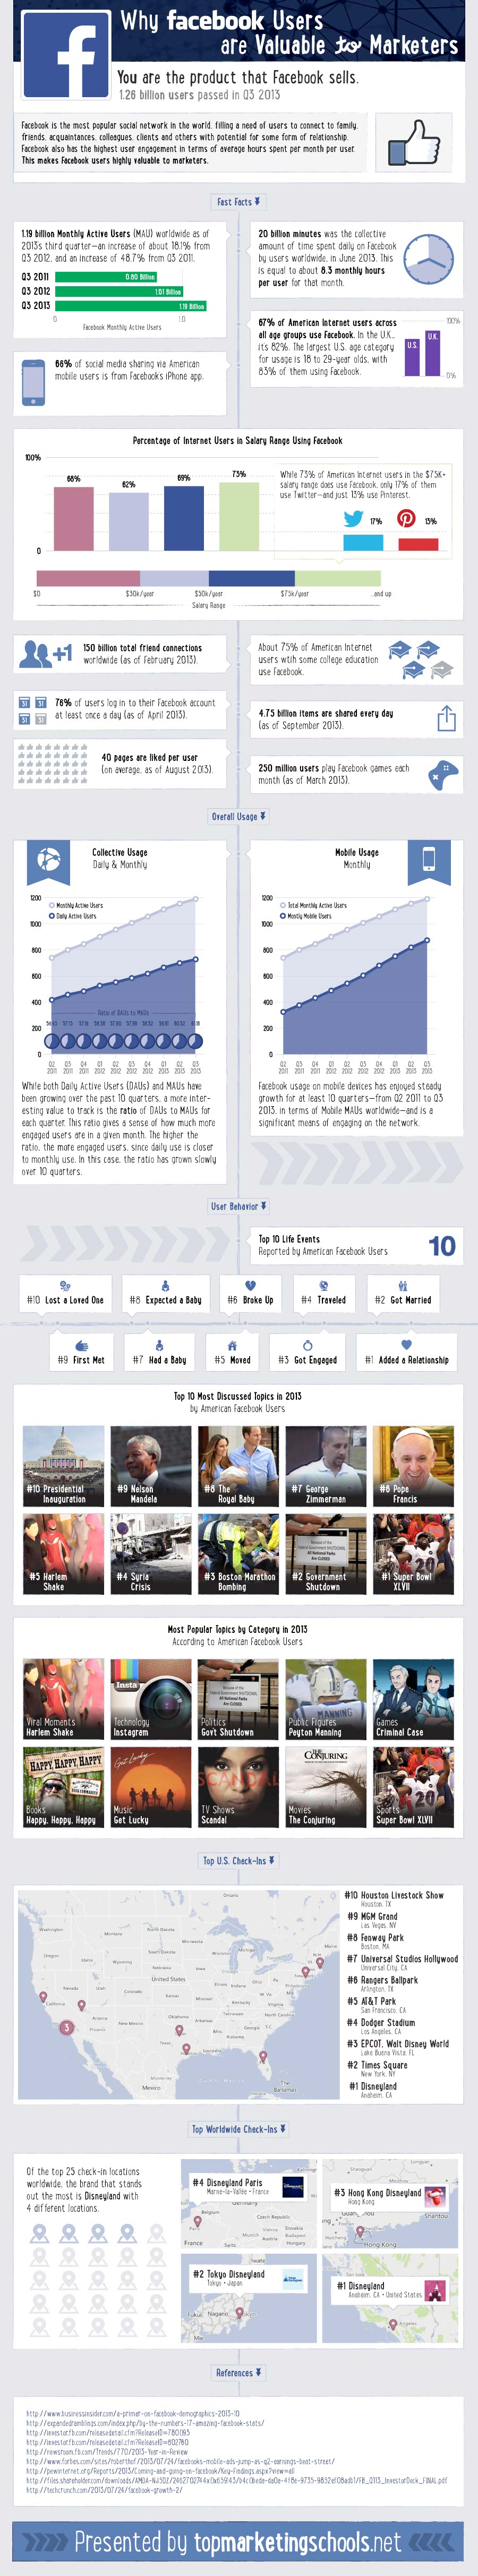 Why Marketers Love Facebook-Infographic